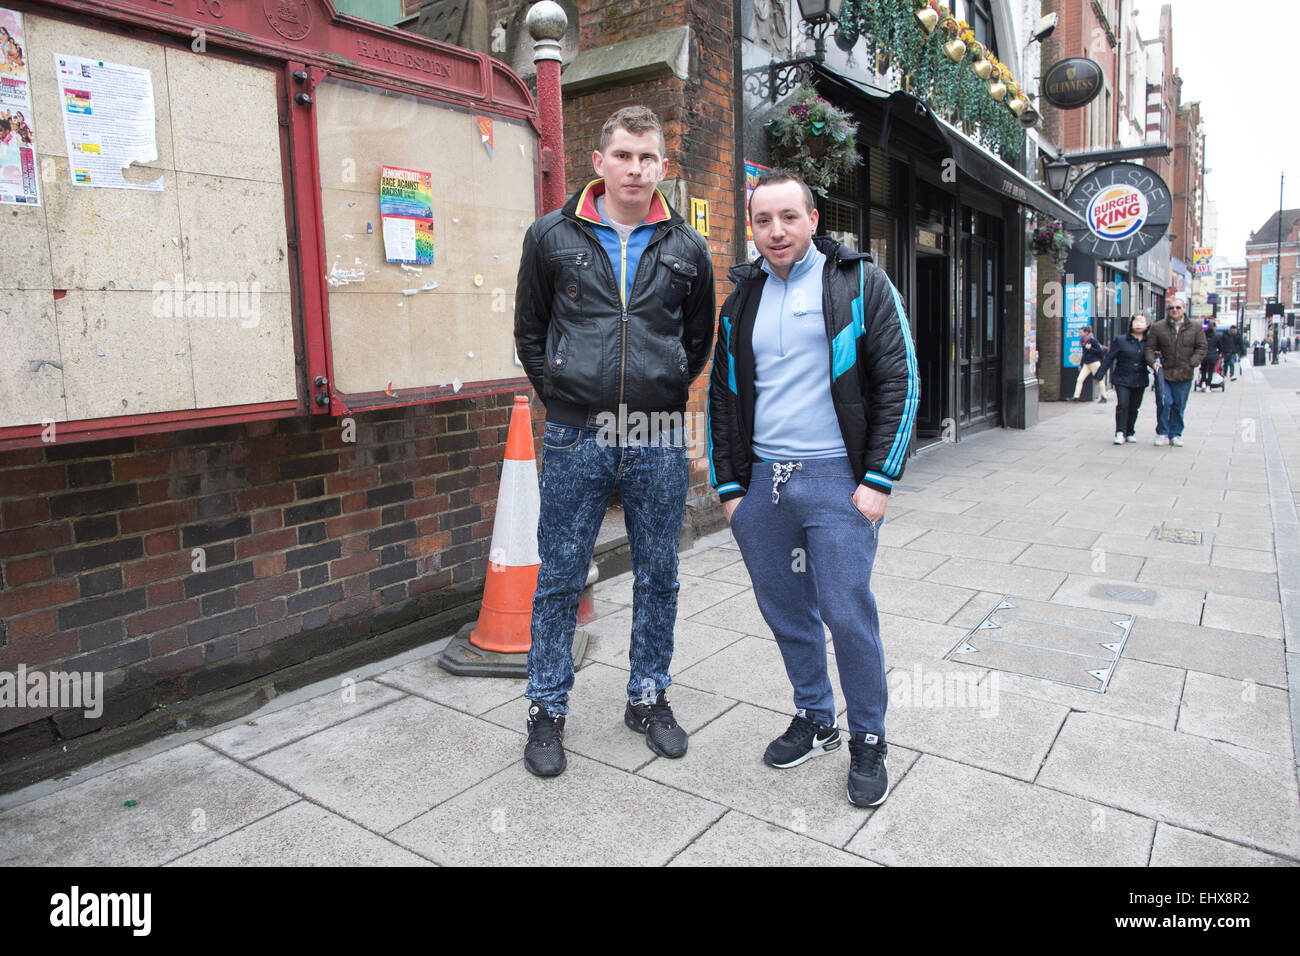 Romanian immigrants on the streets of Harlesden, Northwest London, England, UK - Stock Image